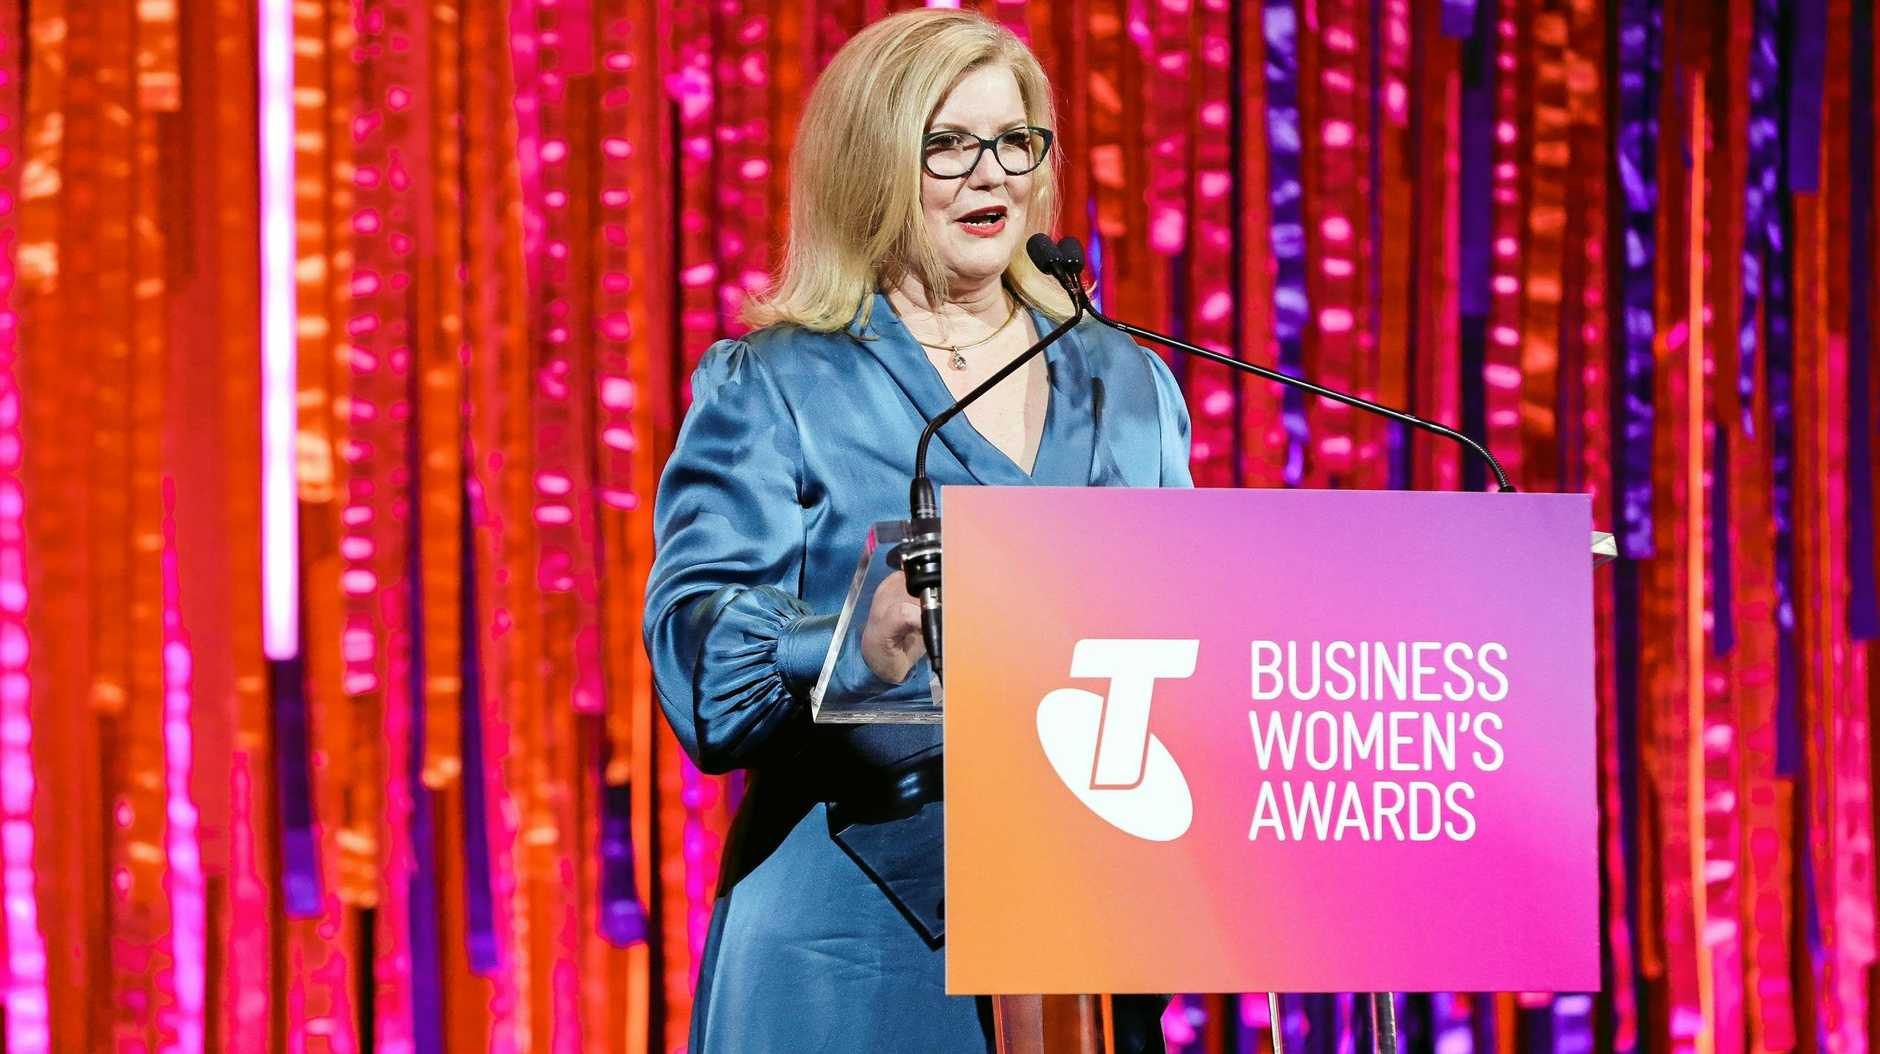 CONGRATULATIONS: Telstra Australian Business Women's Award 2019 winner, NewDirection Care's founder and CEO Natasha Chadwick.